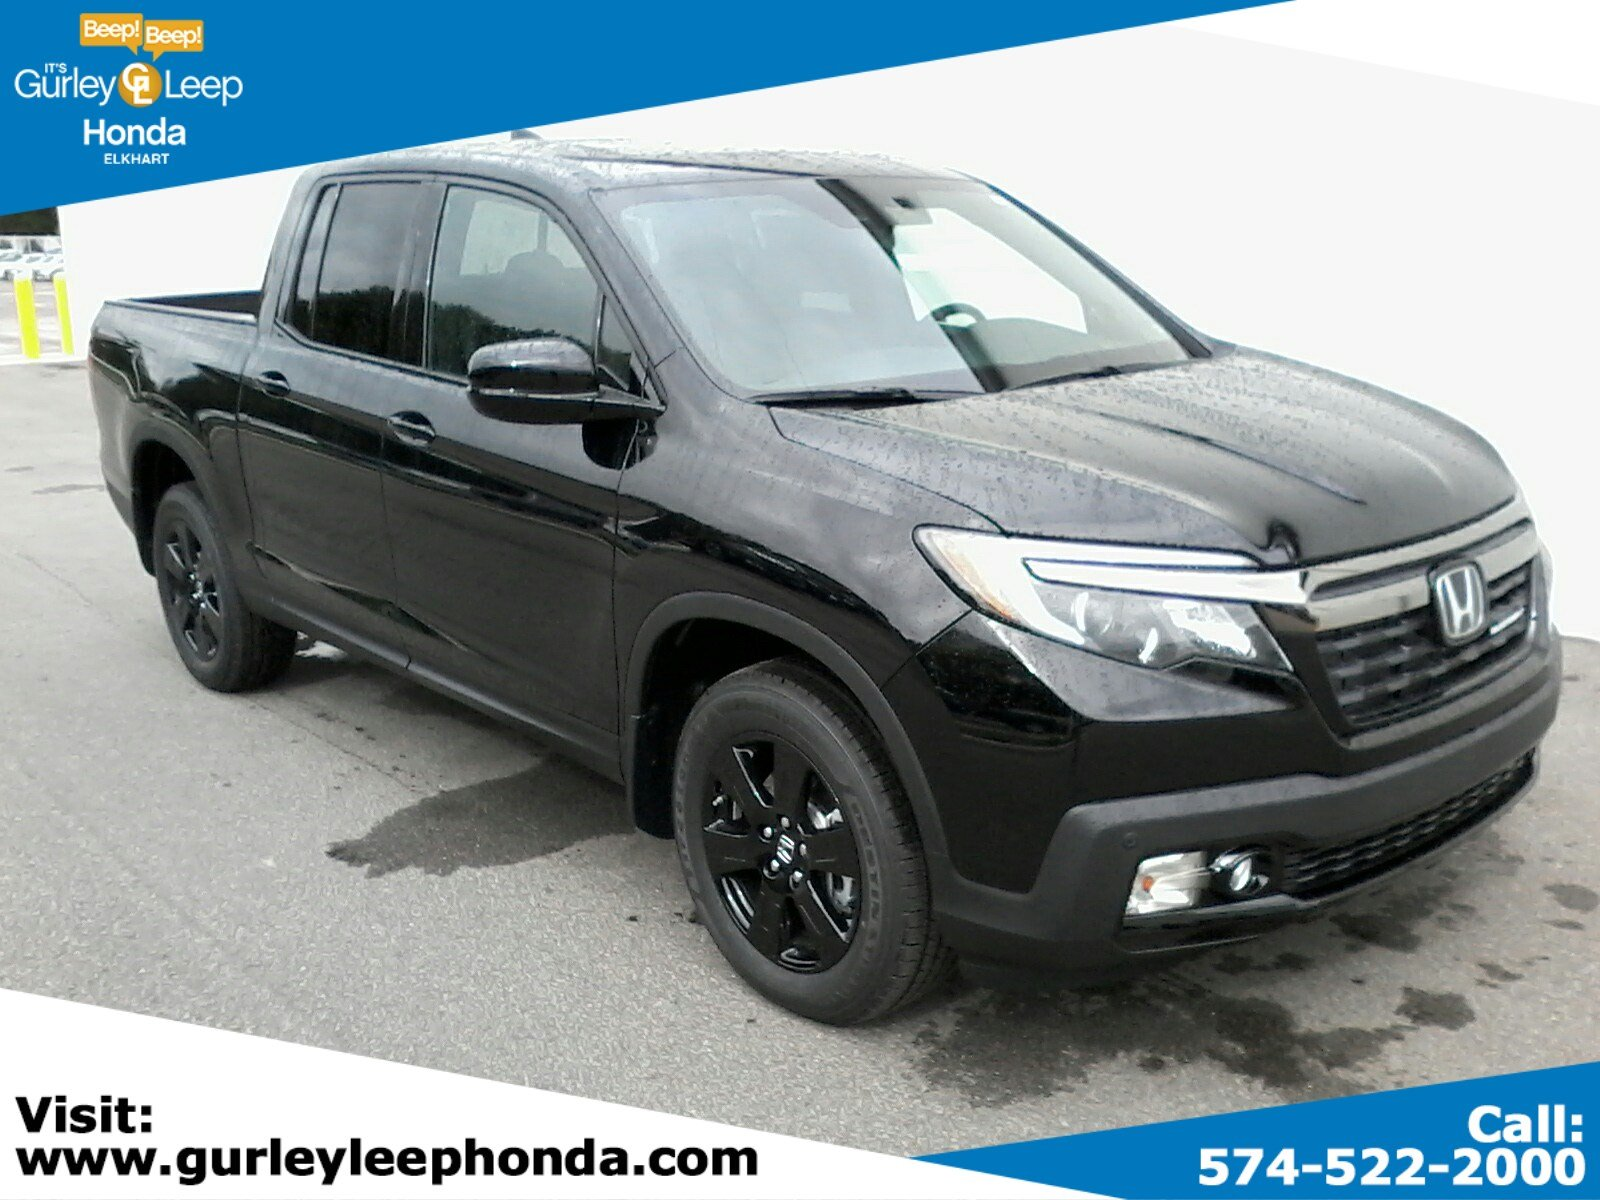 New 2019 Honda Ridgeline Black Edition